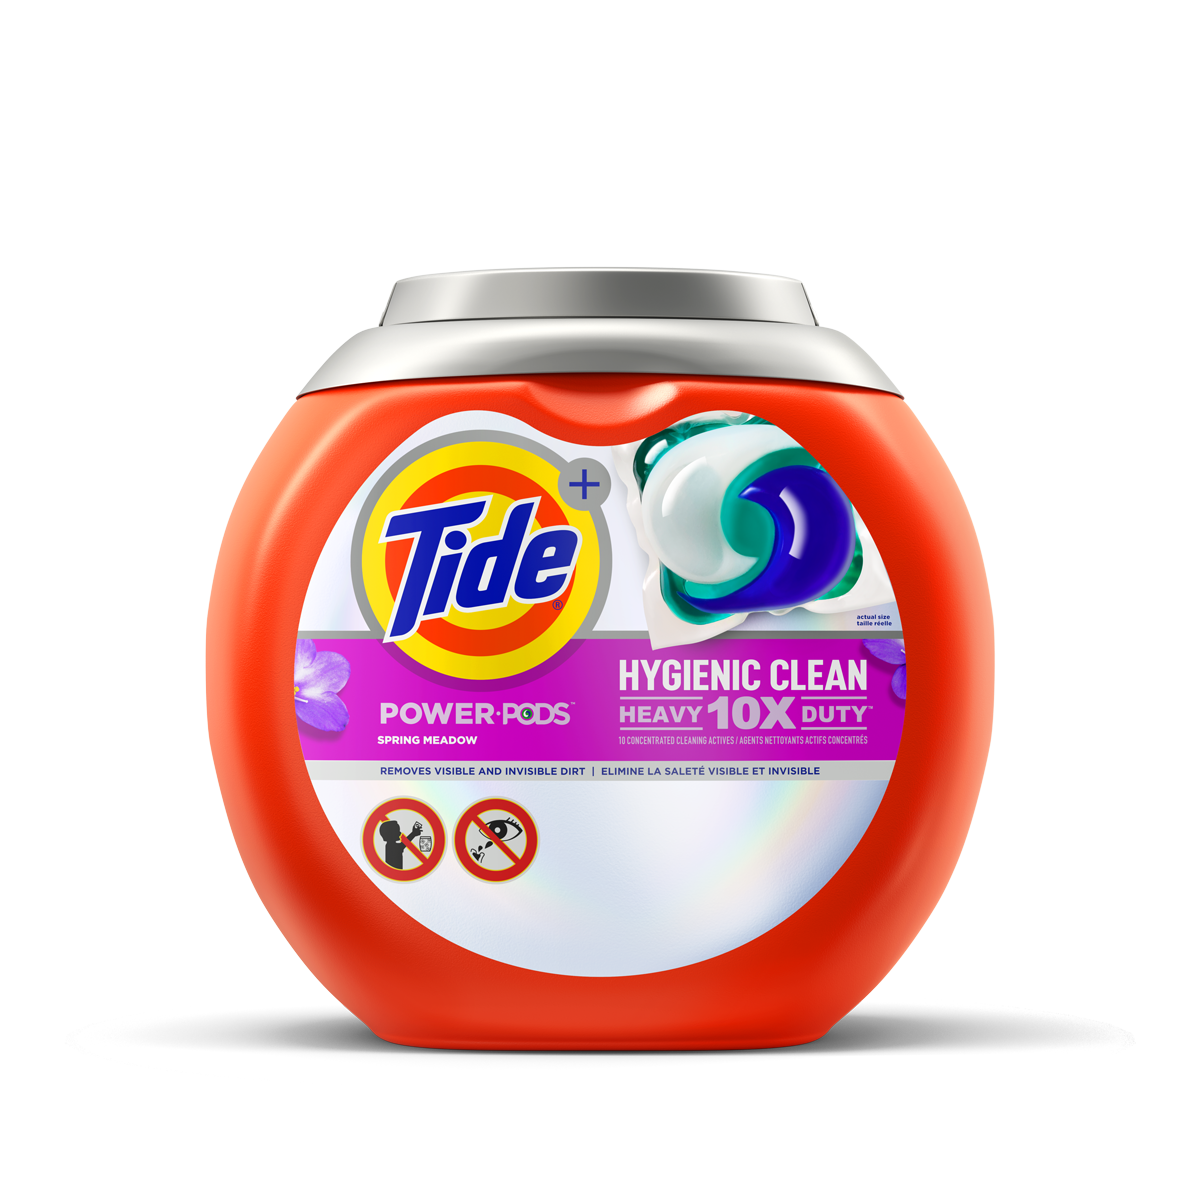 Tide Hygienic Clean Heavy Duty 10x Power PODS Detergent Spring Meadow Scent